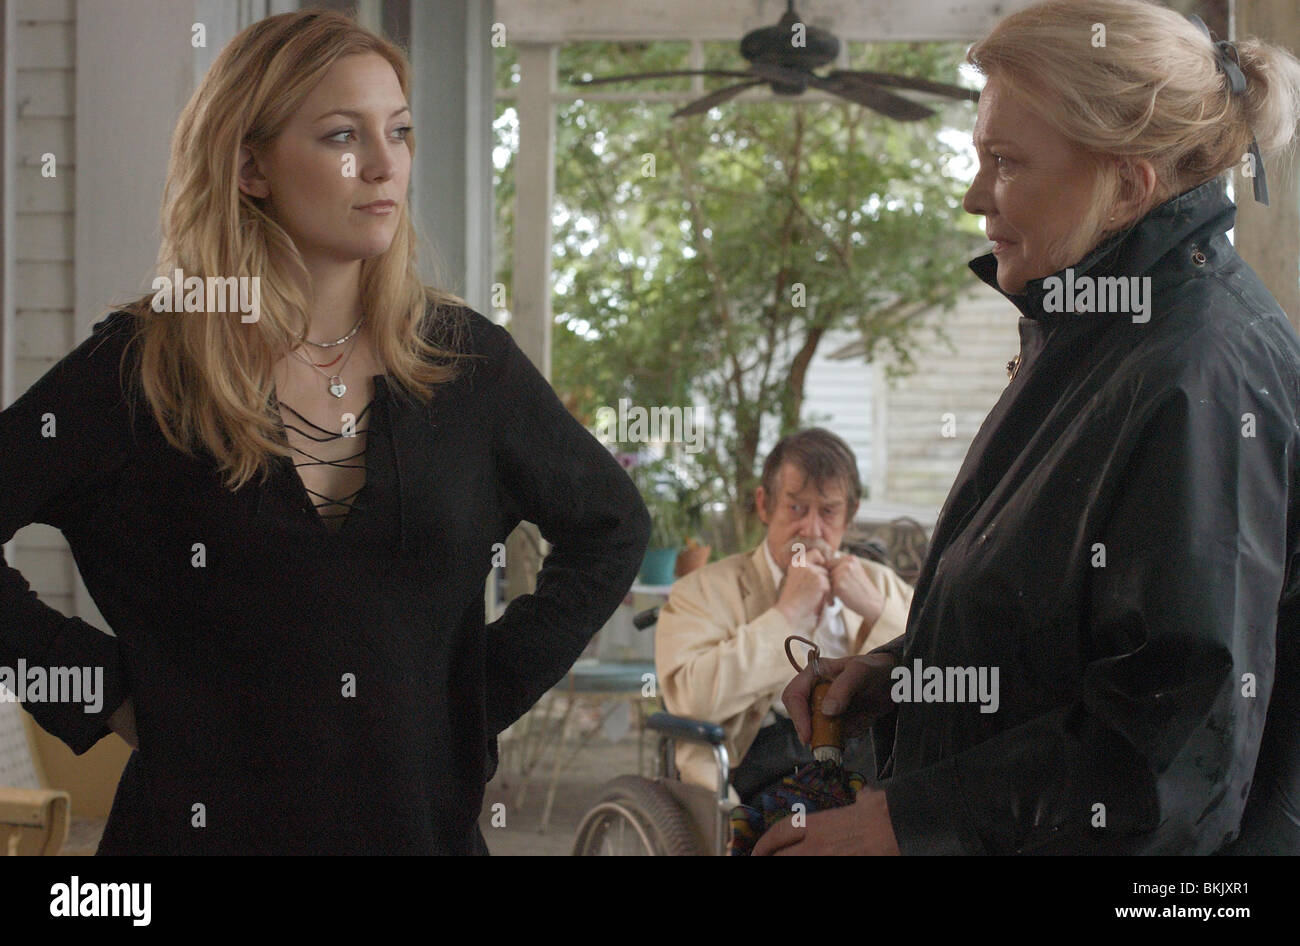 THE SKELETON KEY (2005) KATE HUDSON, JOHN HURT, GENA ...